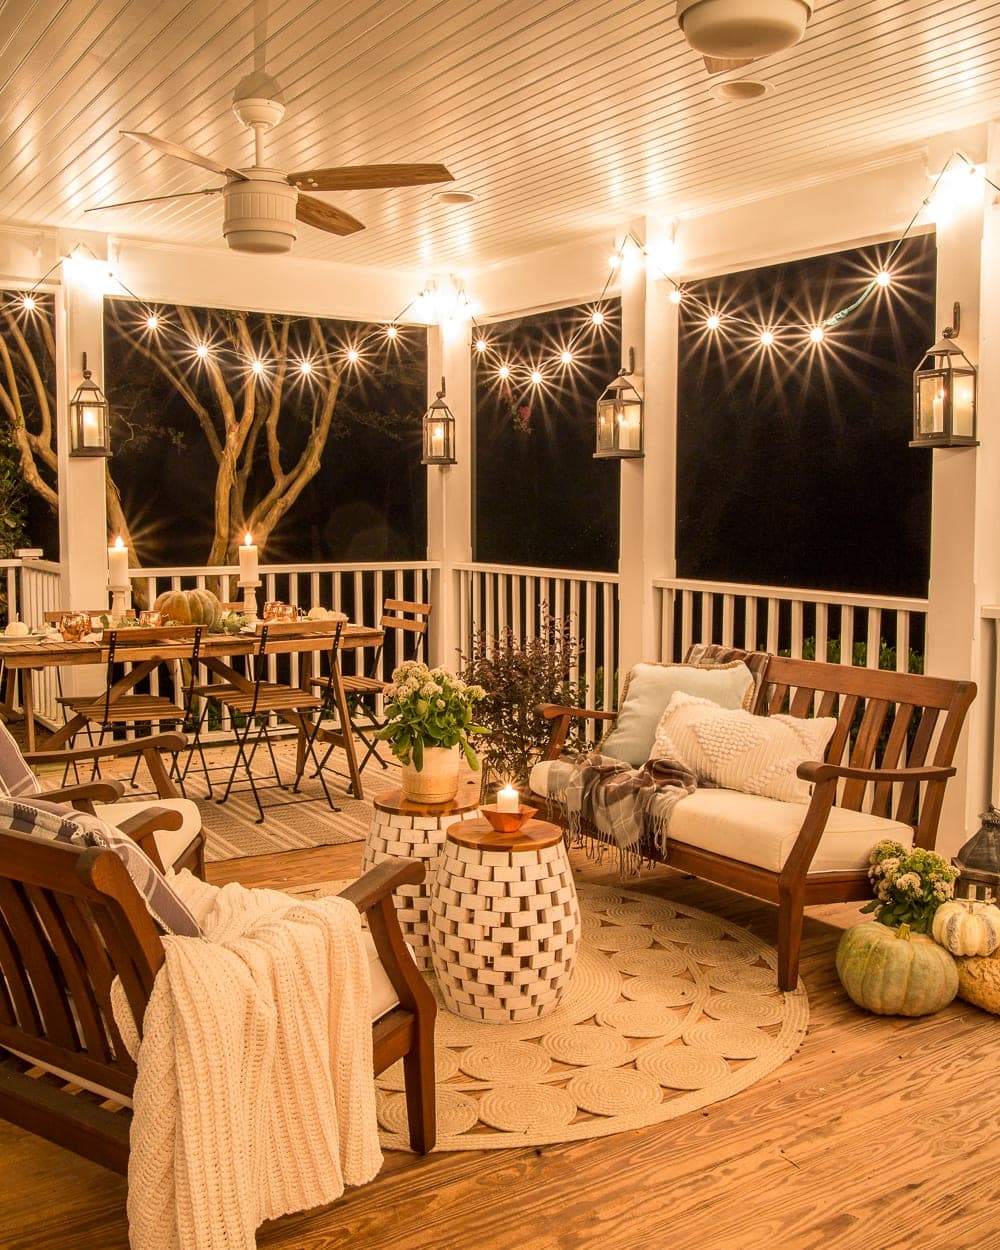 Fall Back Porch at Night | How to style your outdoor spaces for autumn using capsule decor items that will last throughout the seasons and get the most bang for your buck.